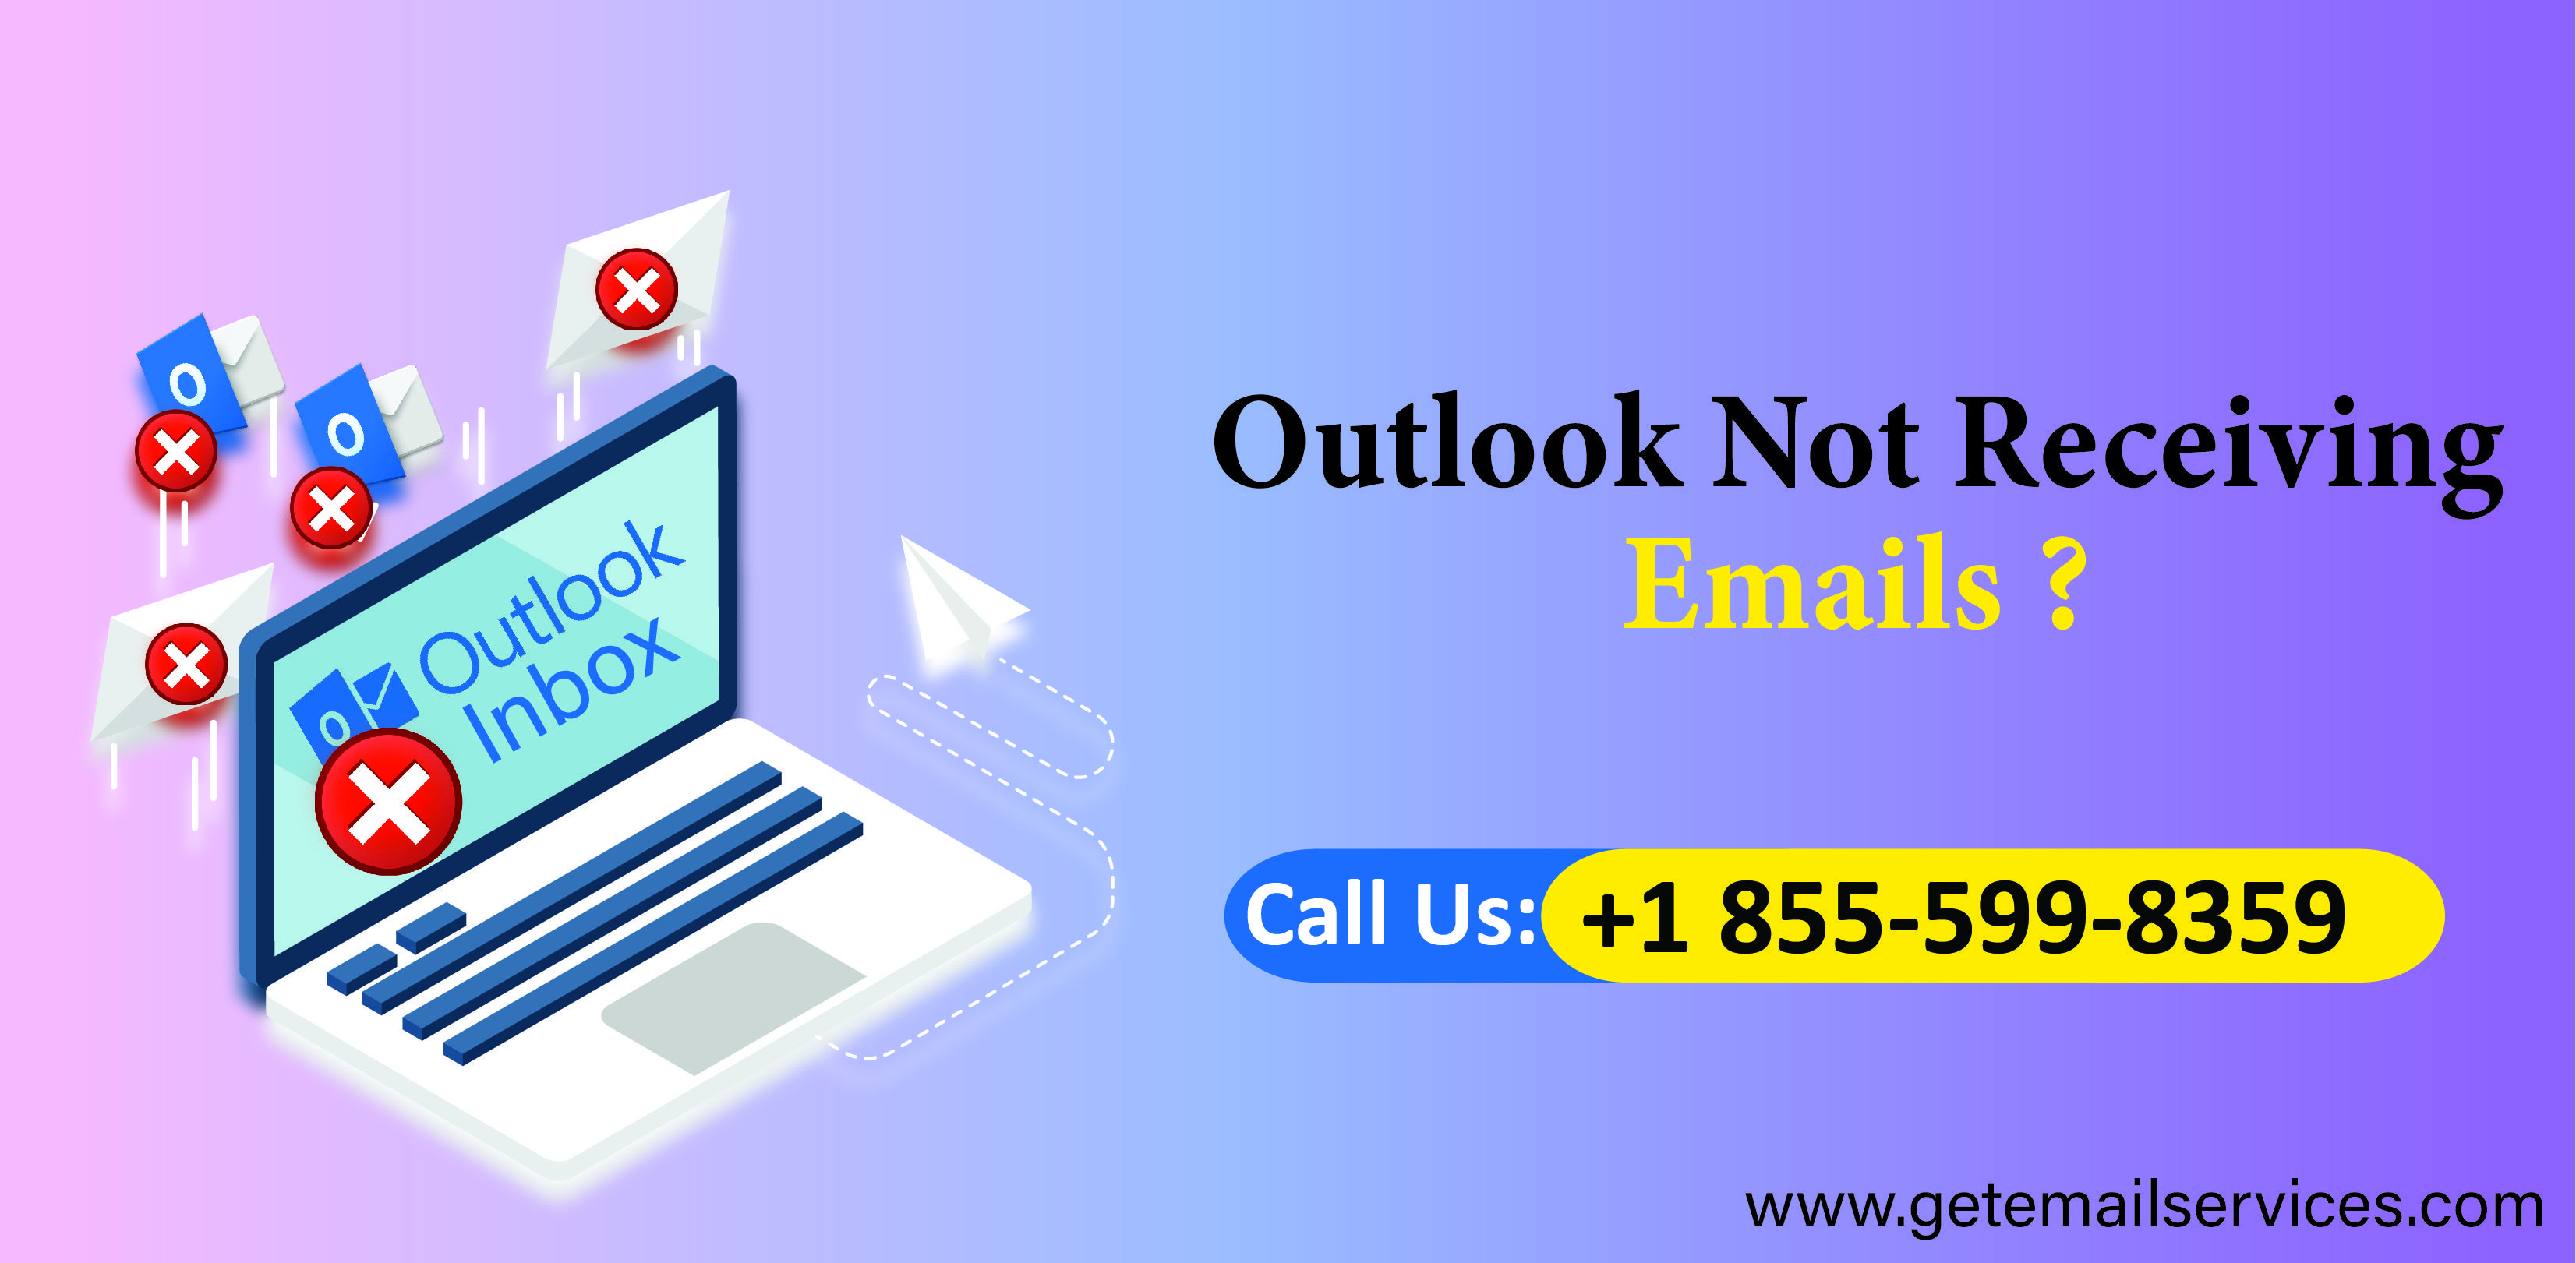 Outlook Not Receiving Emails Aol email, Email service